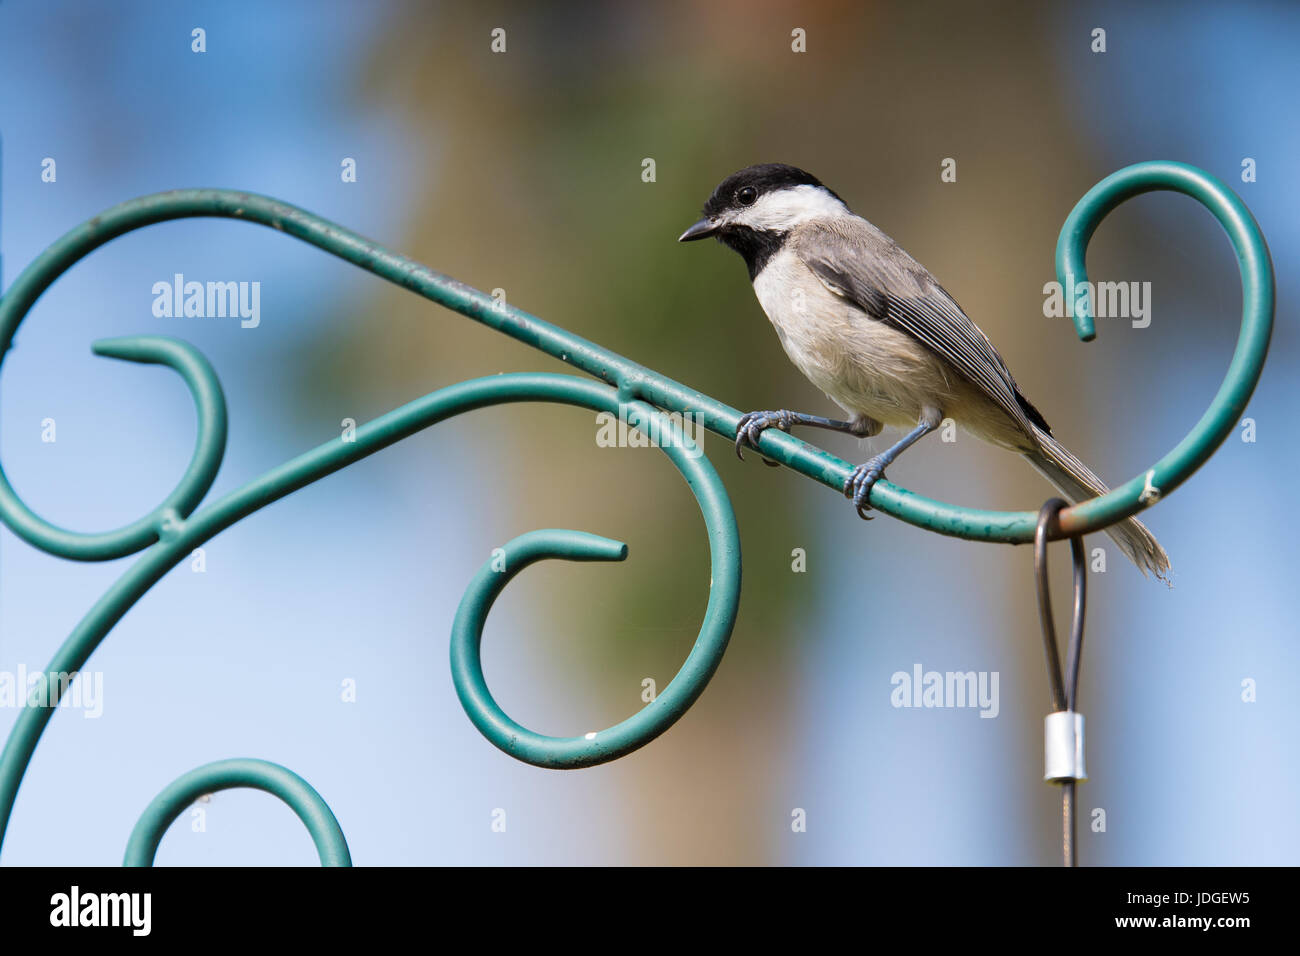 Perching Carolina Chickadee. The Carolina Chickadee is a member of the sparrow family of songbirds. - Stock Image